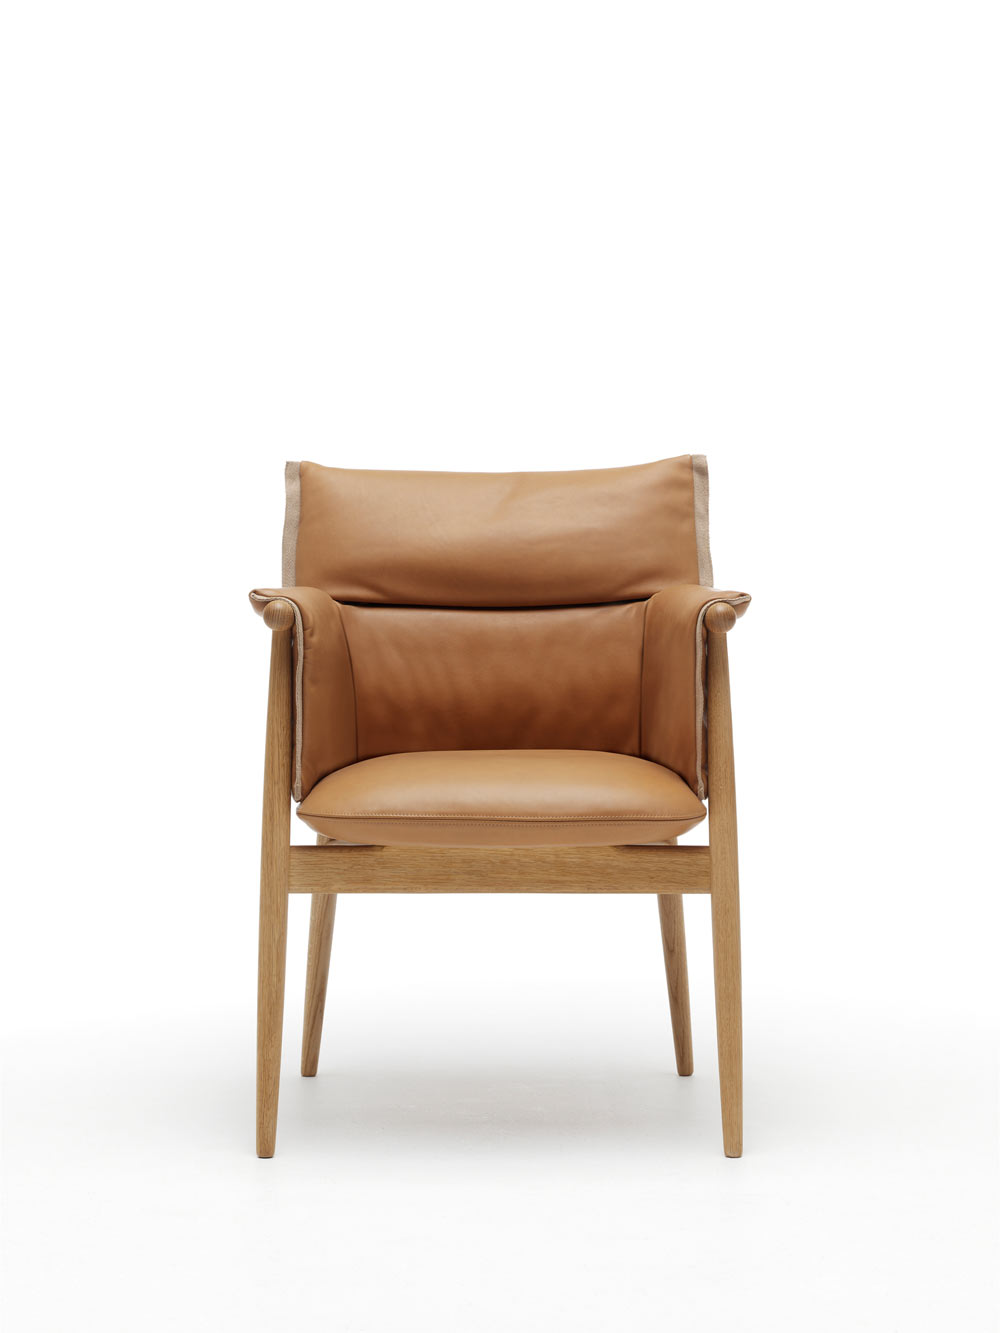 EOOS-Carl-Hansen-Embrace-Chair-8